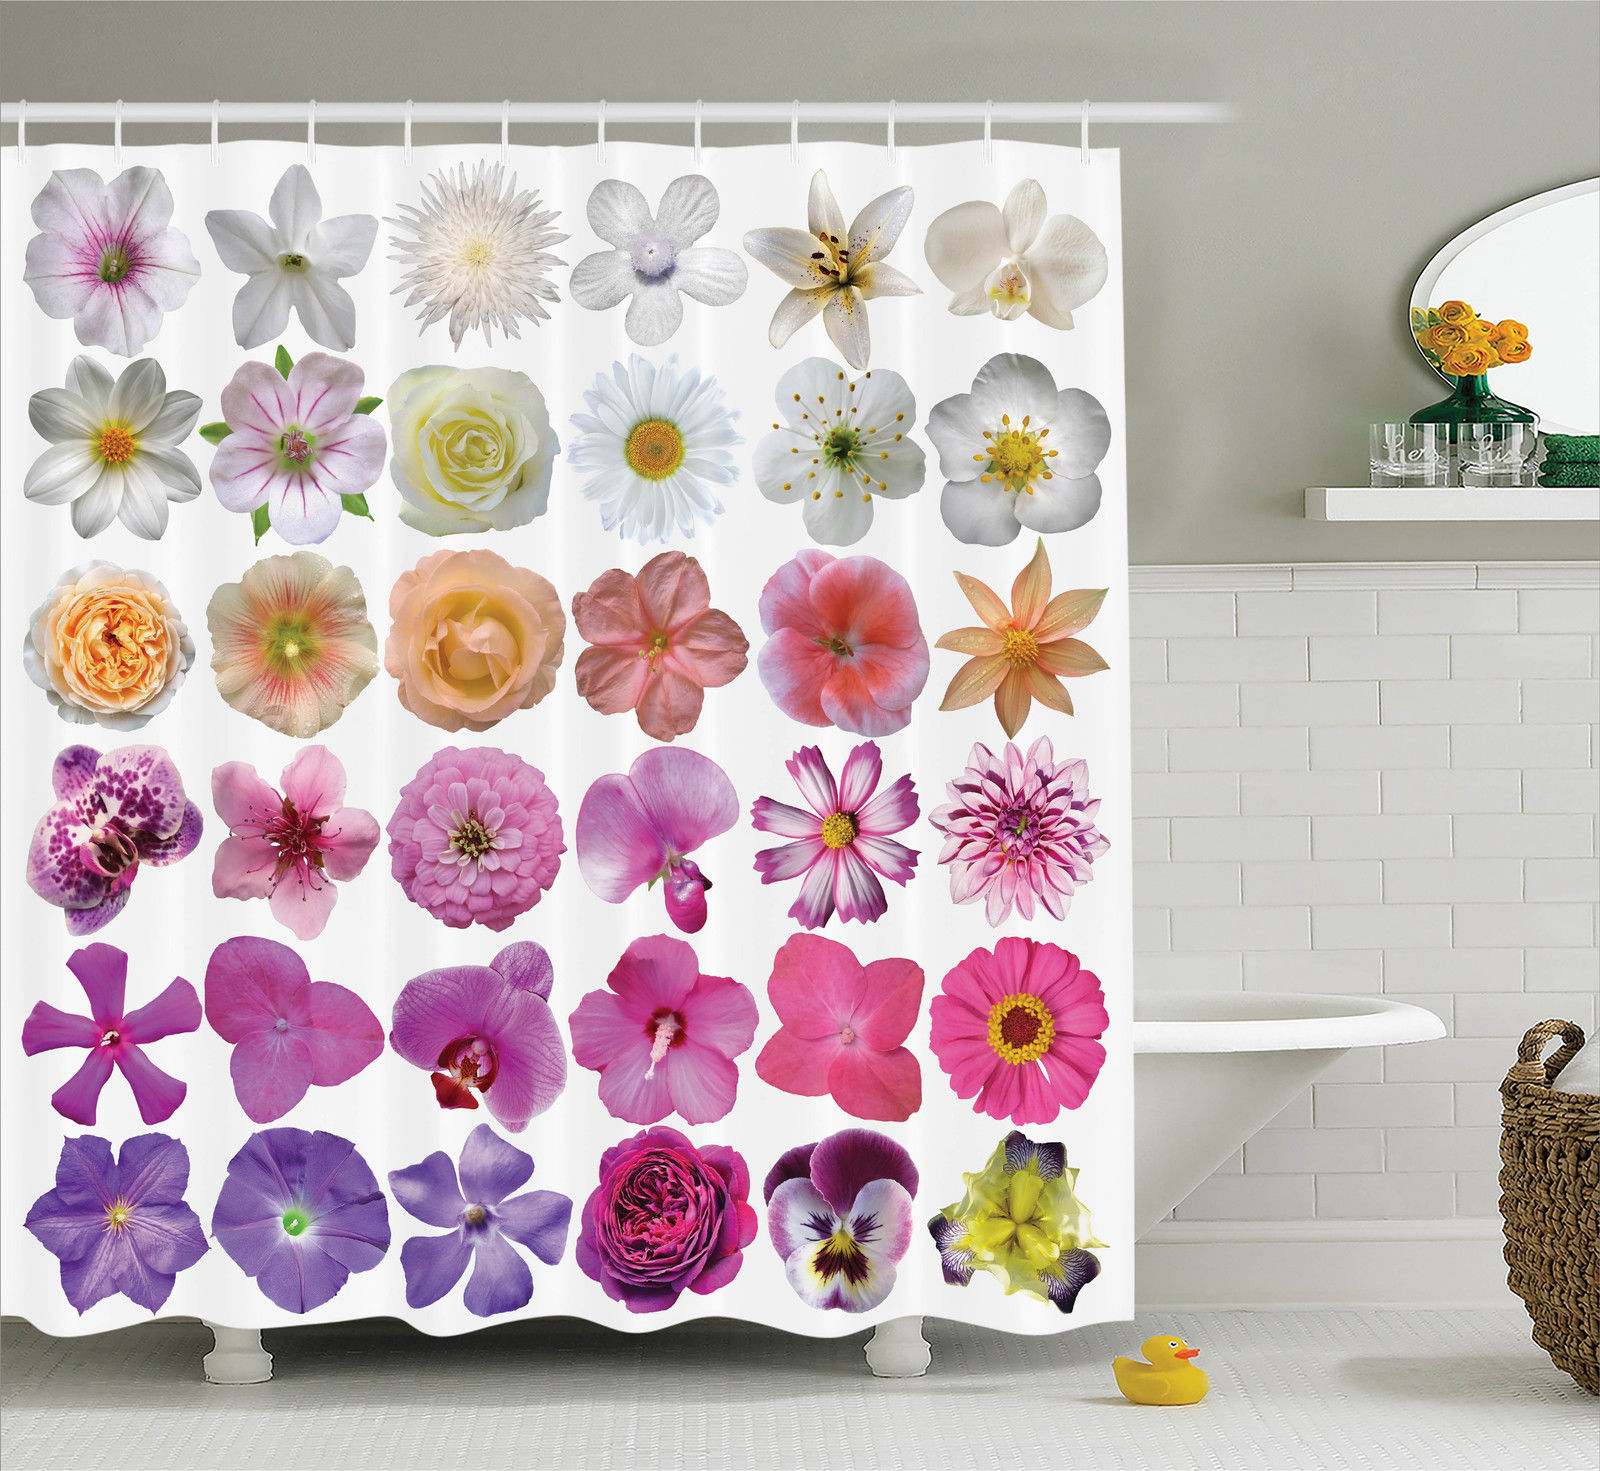 Flower Decor Shower Curtain Set, Pattern Of Various Vase Flowers Petunia Botanic Wild Orchid Floral Nature Art Decor, Bathroom Accessories, 69W X 70L Inches, By Ambesonne